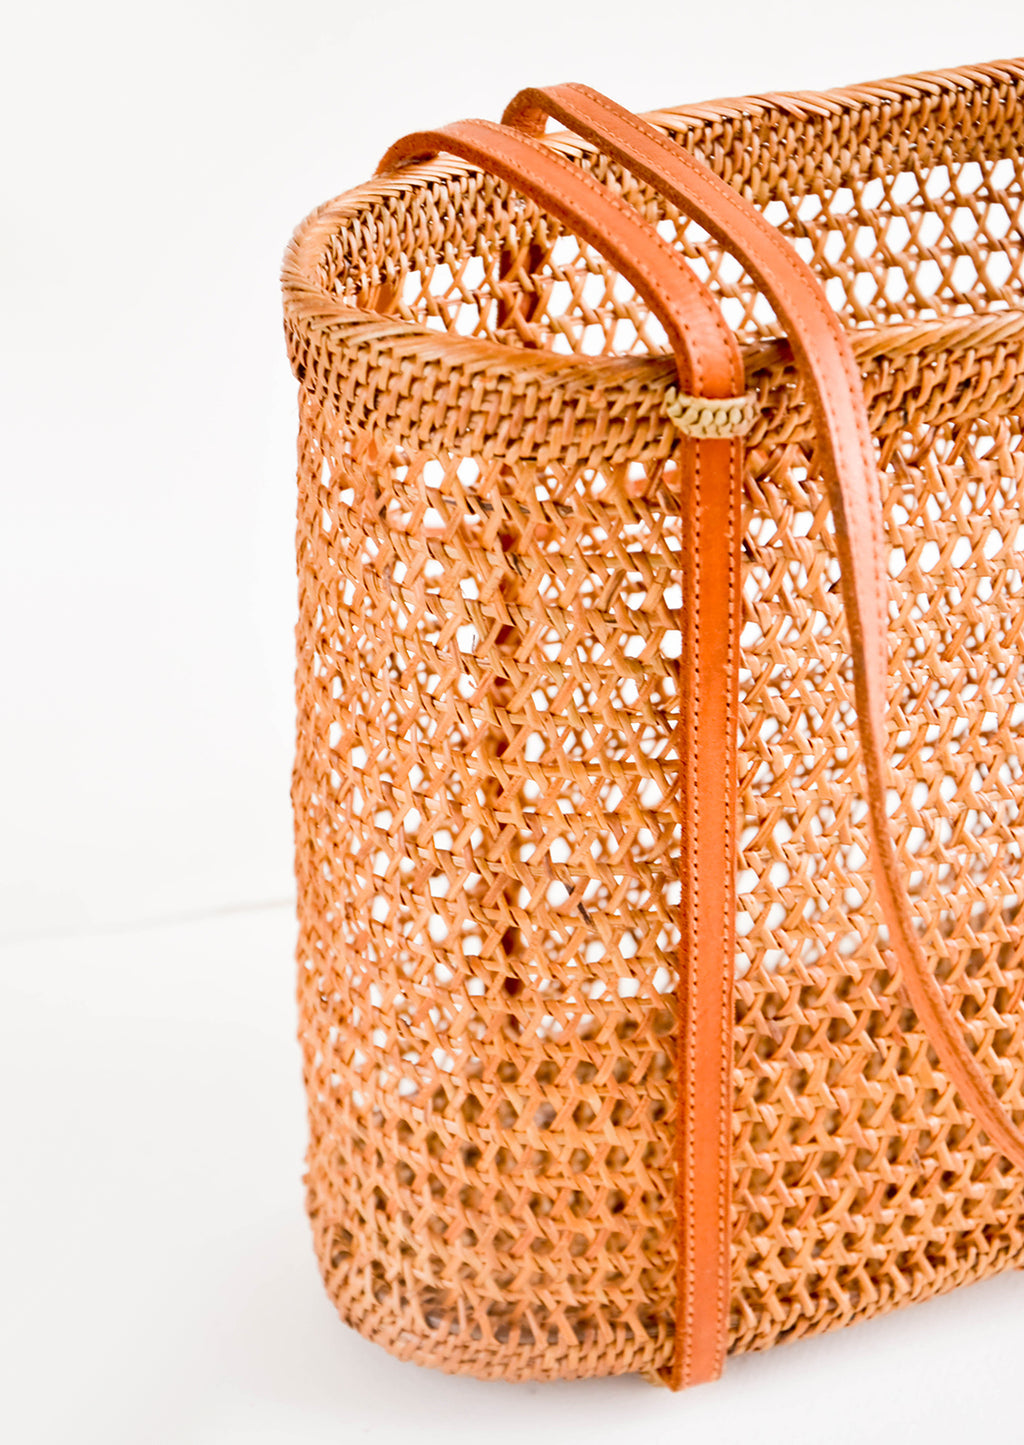 2: Shoulder tote bag with thin leather straps, made from open-weave rattan with a tanned effect